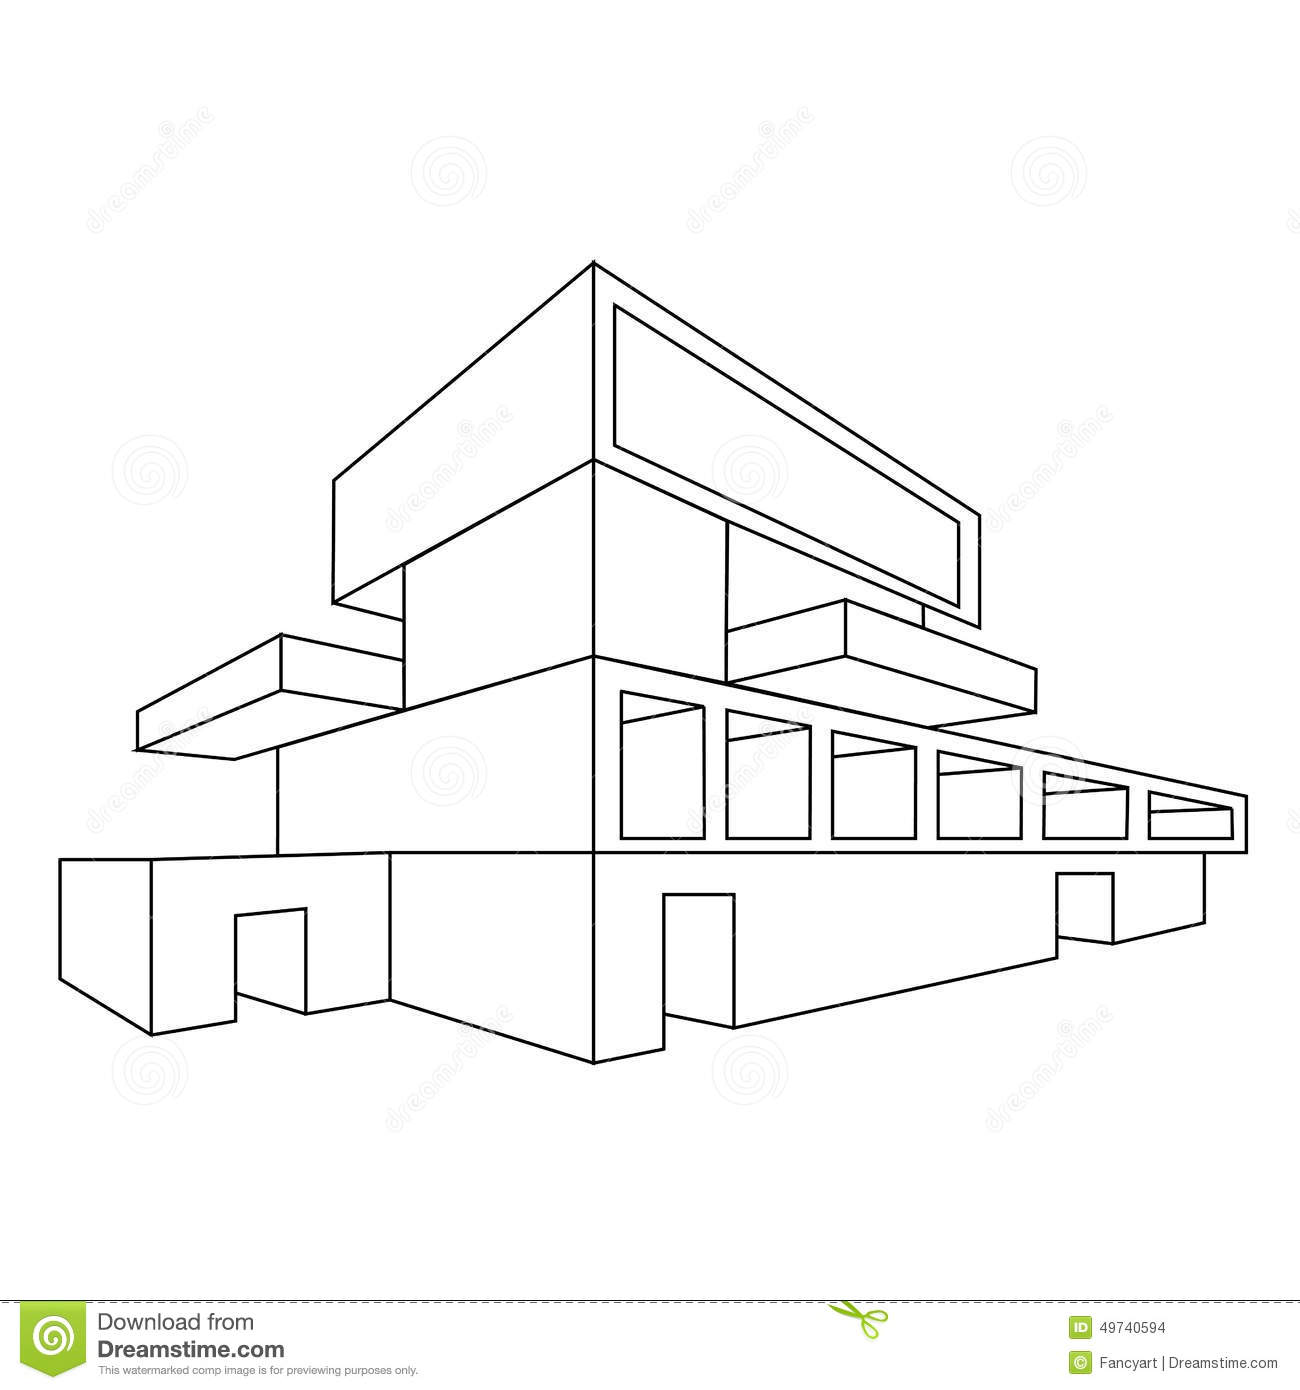 2d dessin de perspective de maison illustration de vecteur for Architecture 2d